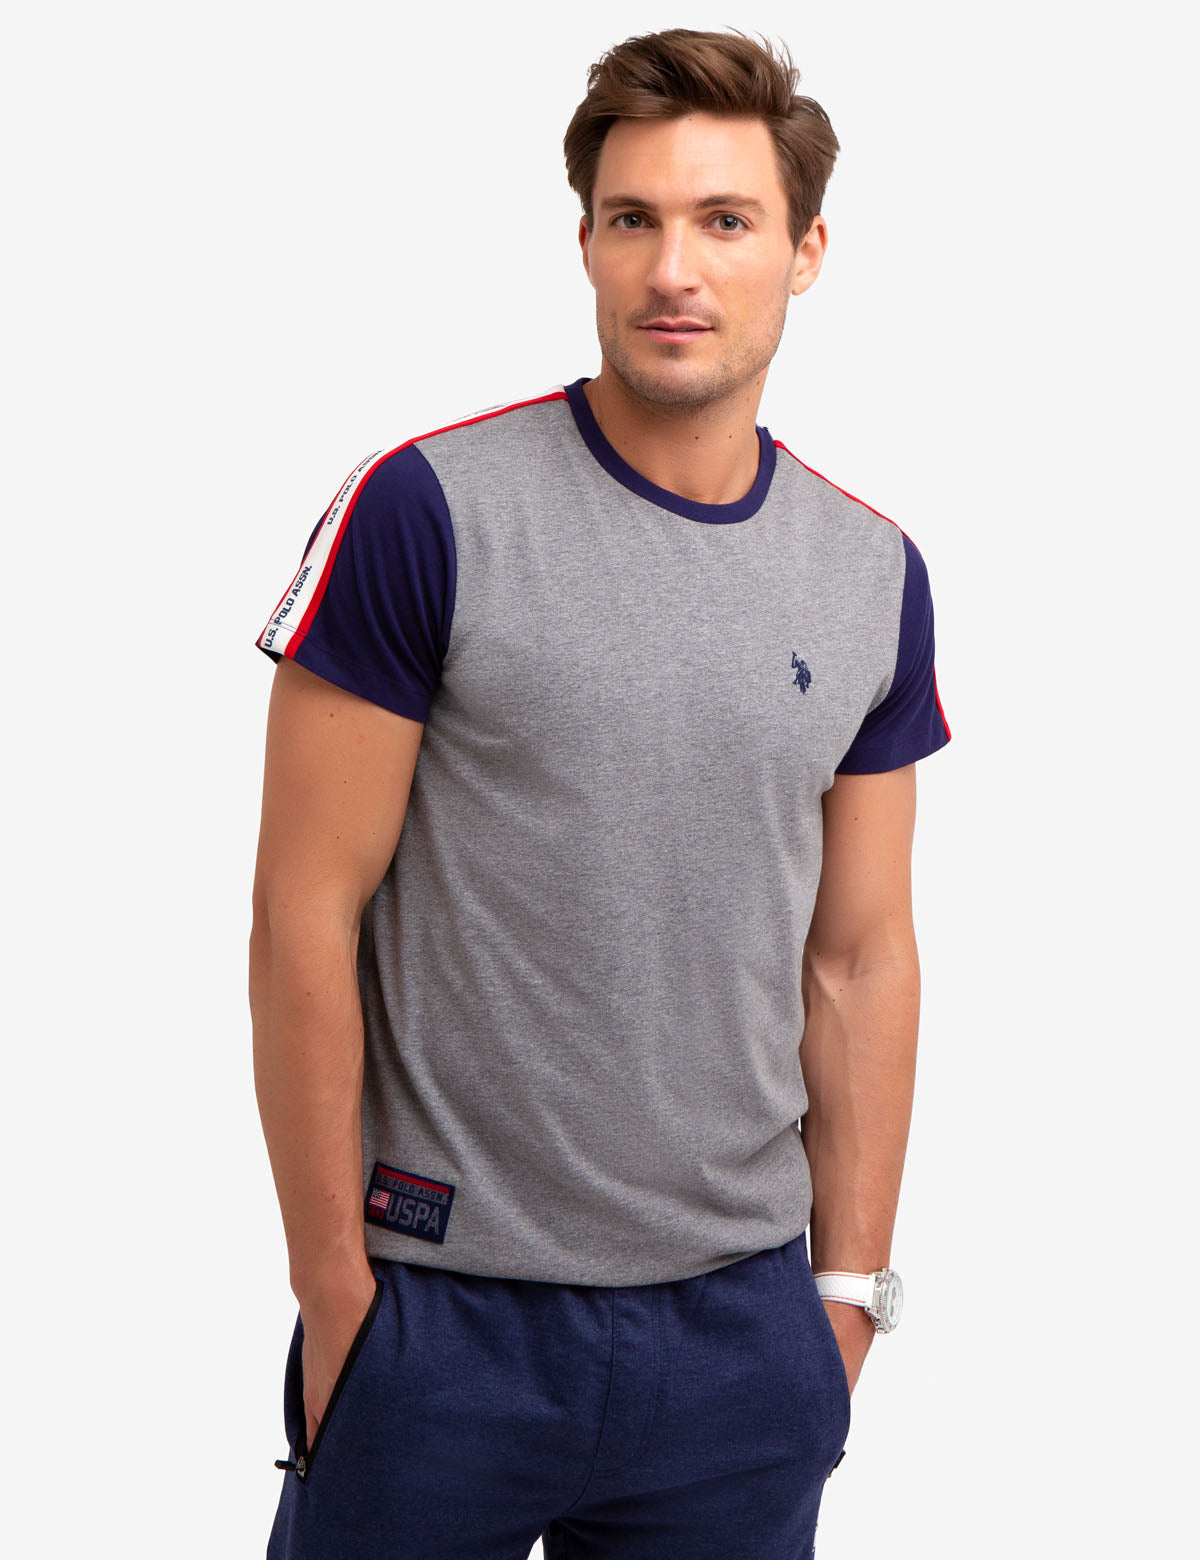 COLORBLOCK TEE-SHIRT WITH U.S. POLO ASSN. TAPING